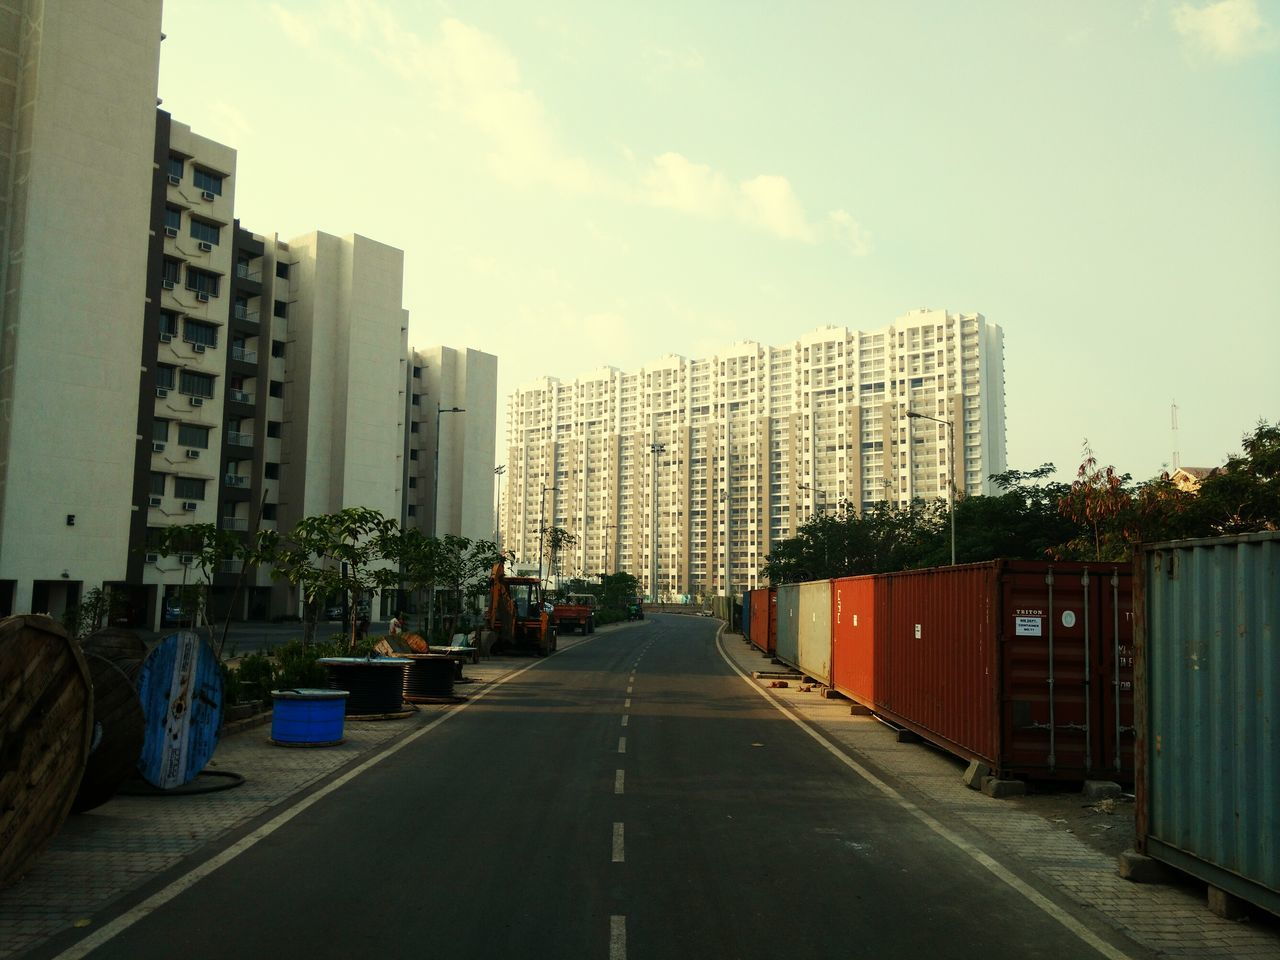 Empty Road With Buildings In Background